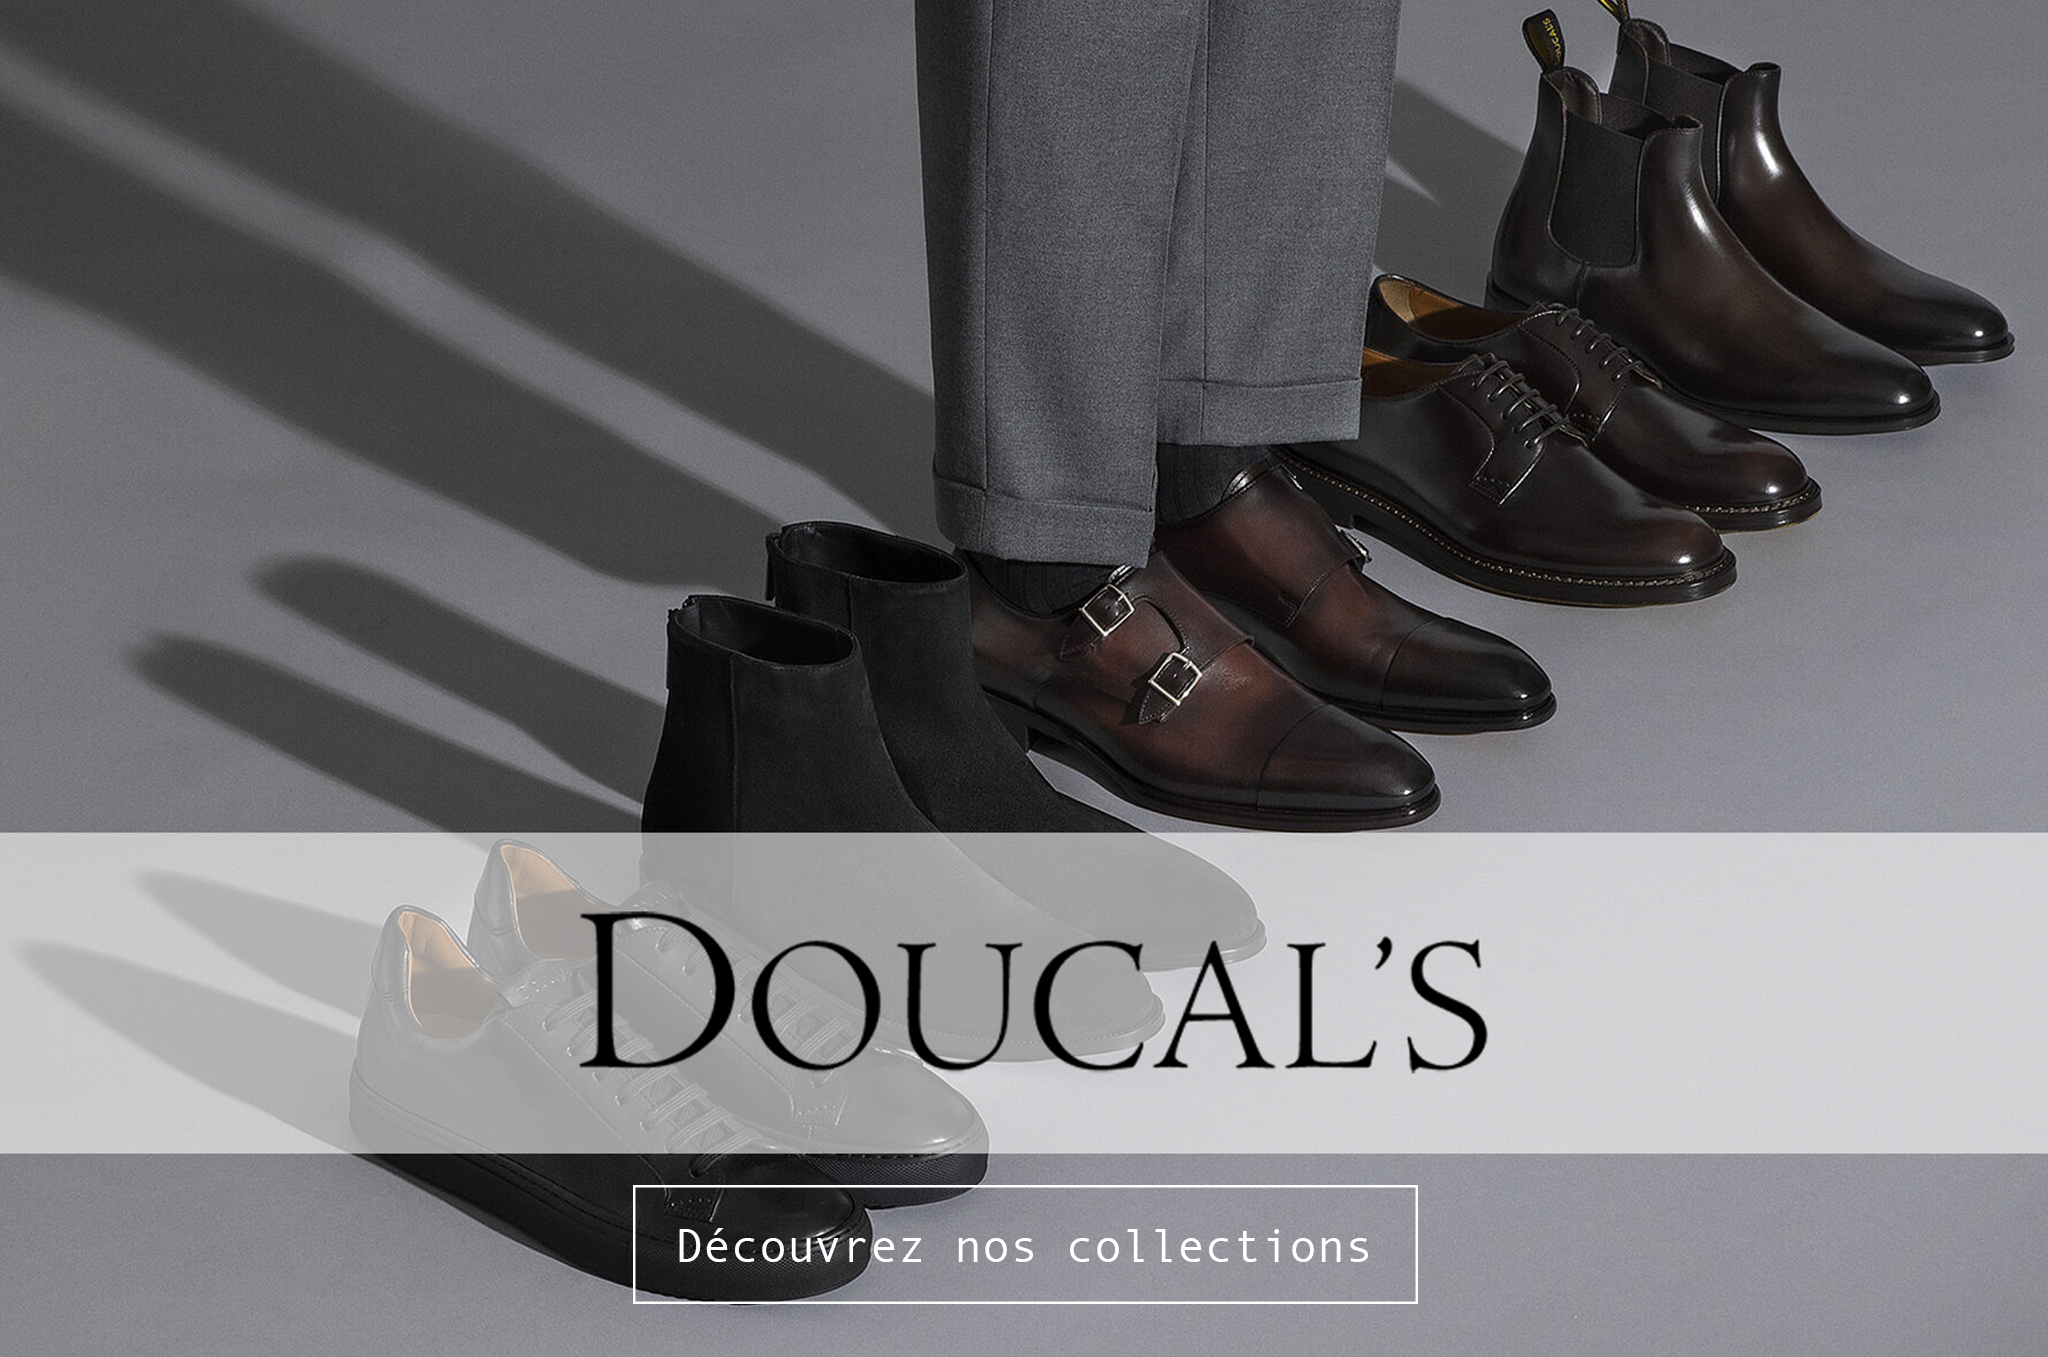 Doucals Collections